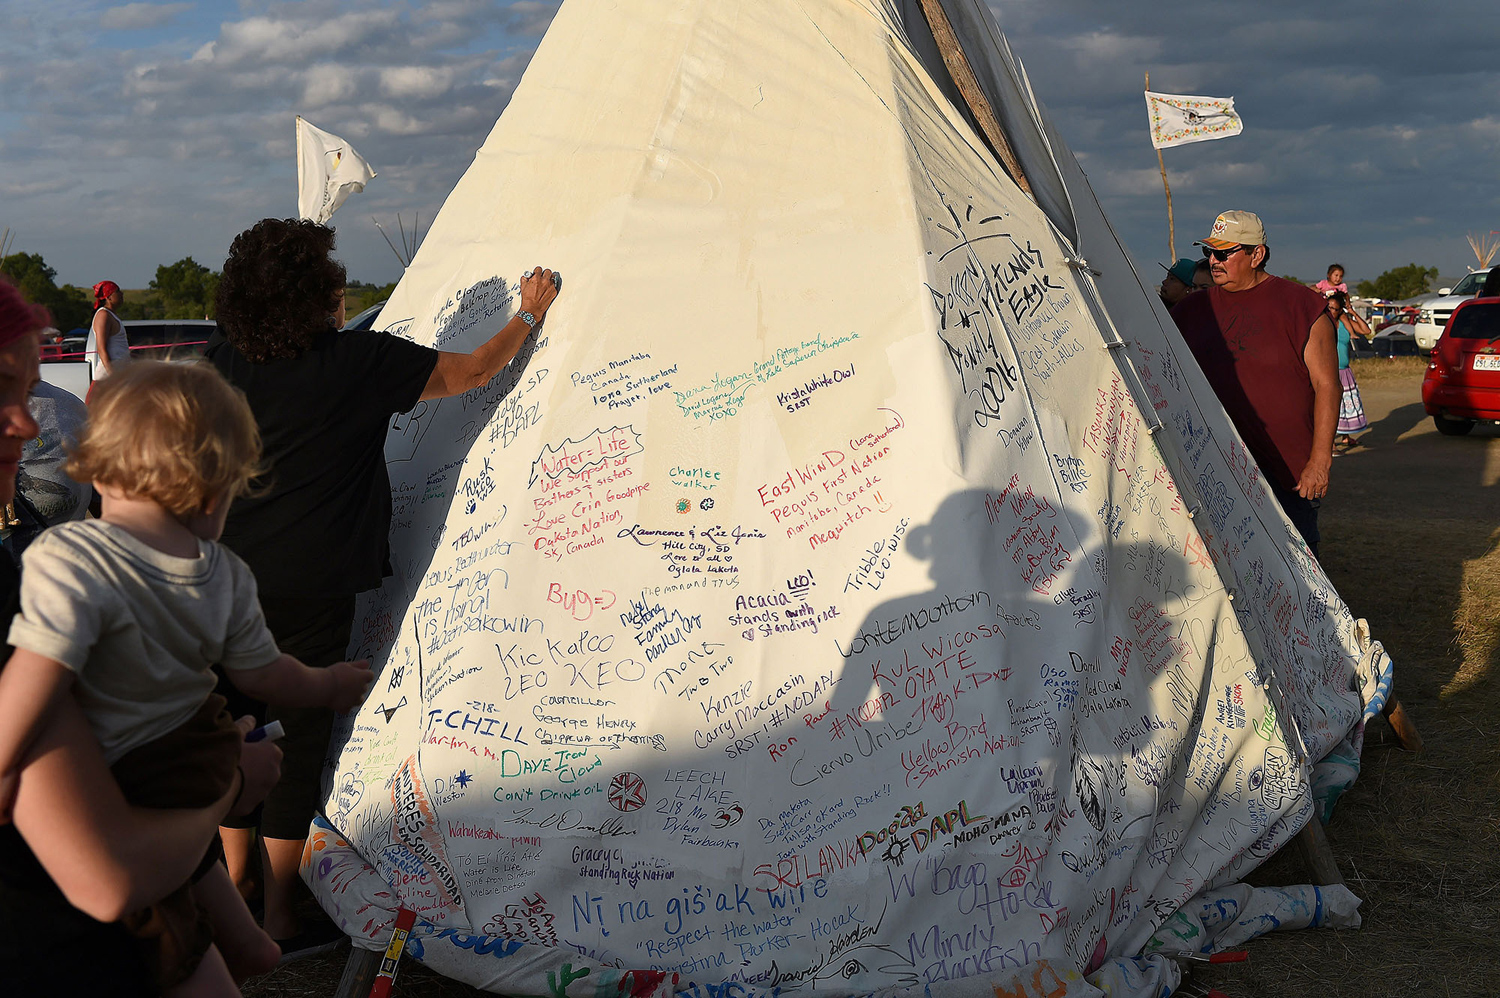 People sign a teepee with words of support for protestors at an encampment where hundreds of people have gathered to join the Standing Rock Sioux Tribe's protest against the construction of the Dakota Access Pipe (DAPL), near Cannon Ball, North Dakota, on September 3, 2016. The Indian reservation in North Dakota is the site of the largest gathering of Native Americans in more than 100 years. Indigenous people from across the US are living in camps on the Standing Rock reservation as they protest the construction of the new oil pipeline which they fear will destroy their water supply.  / AFP / Robyn BECK        (Photo credit should read ROBYN BECK/AFP/Getty Images)